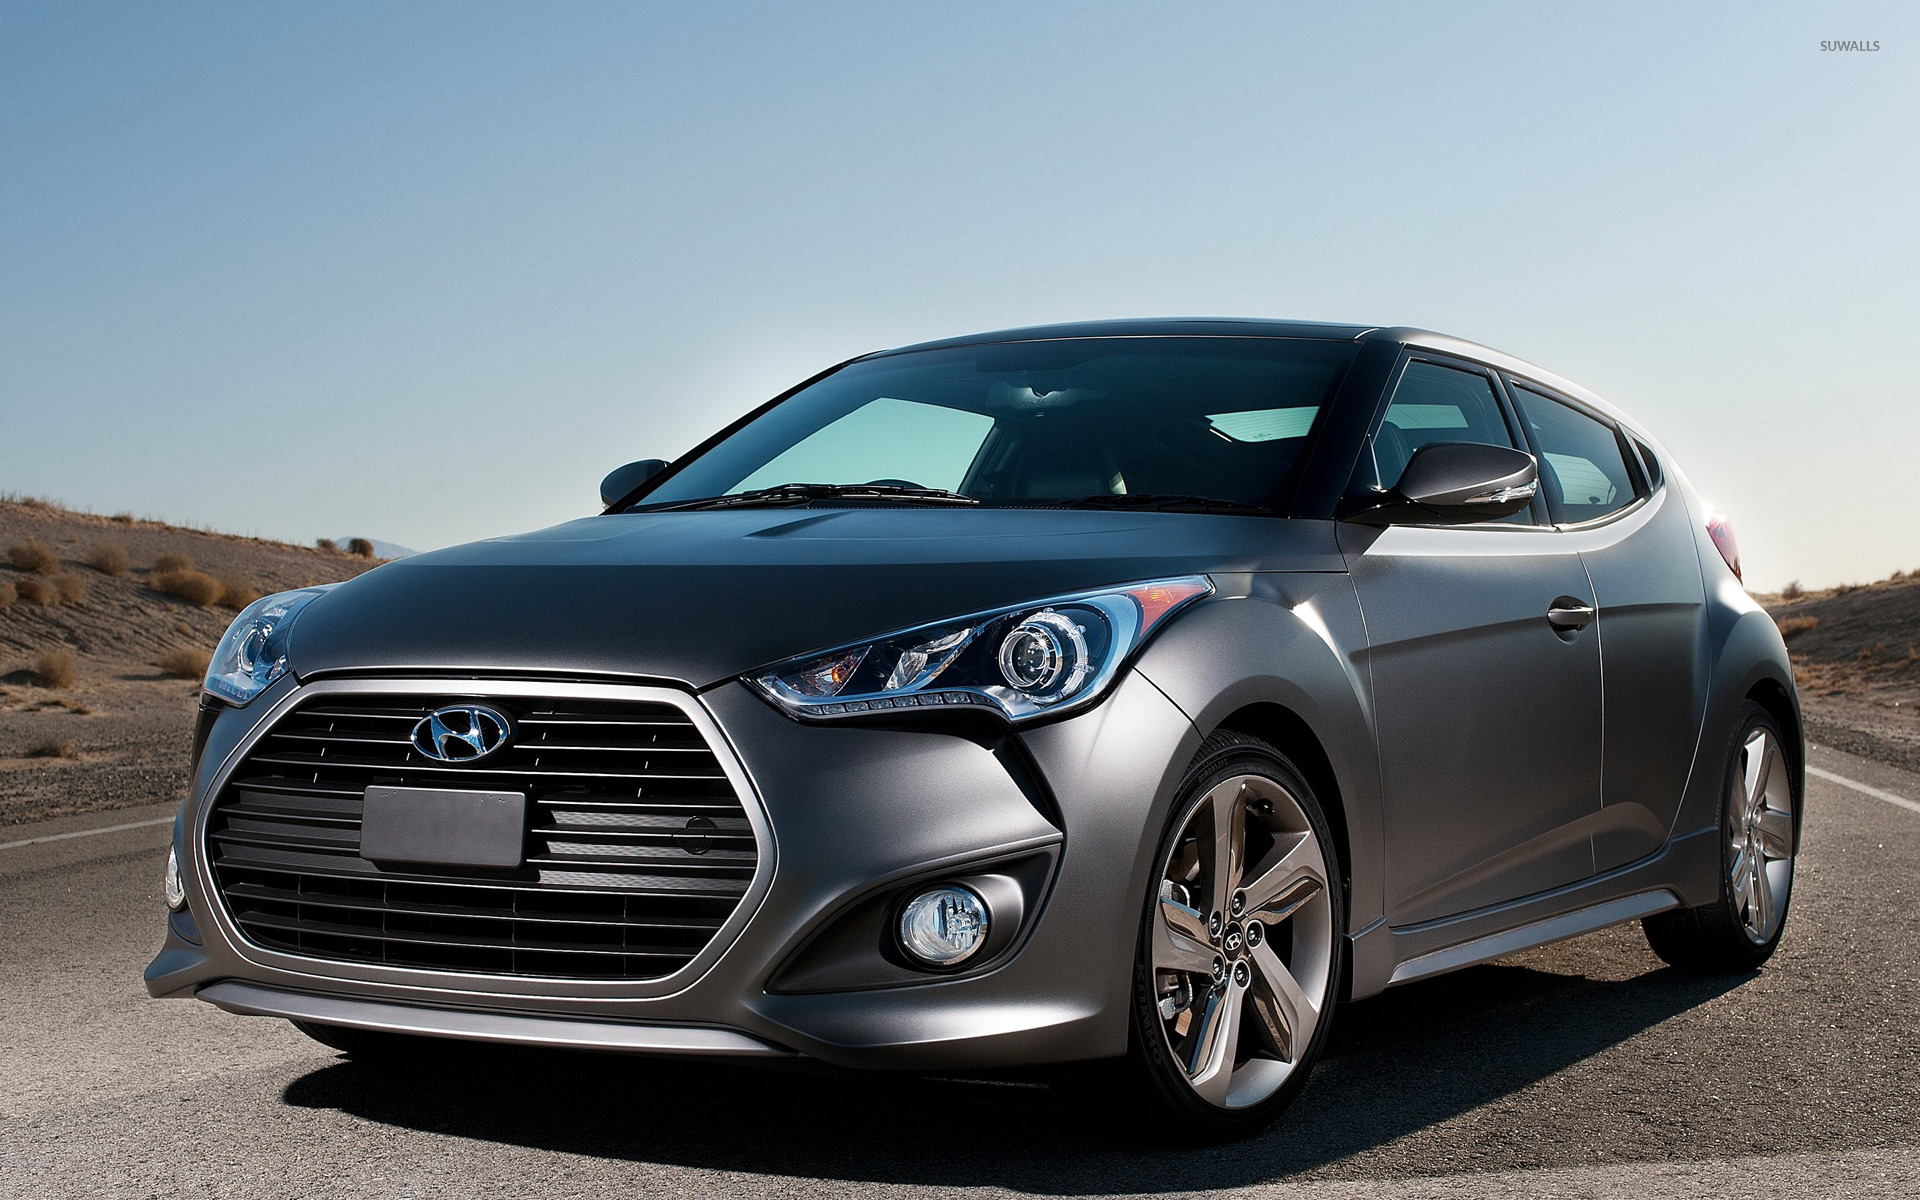 2013 hyundai veloster turbo wallpaper car wallpapers 17315. Black Bedroom Furniture Sets. Home Design Ideas